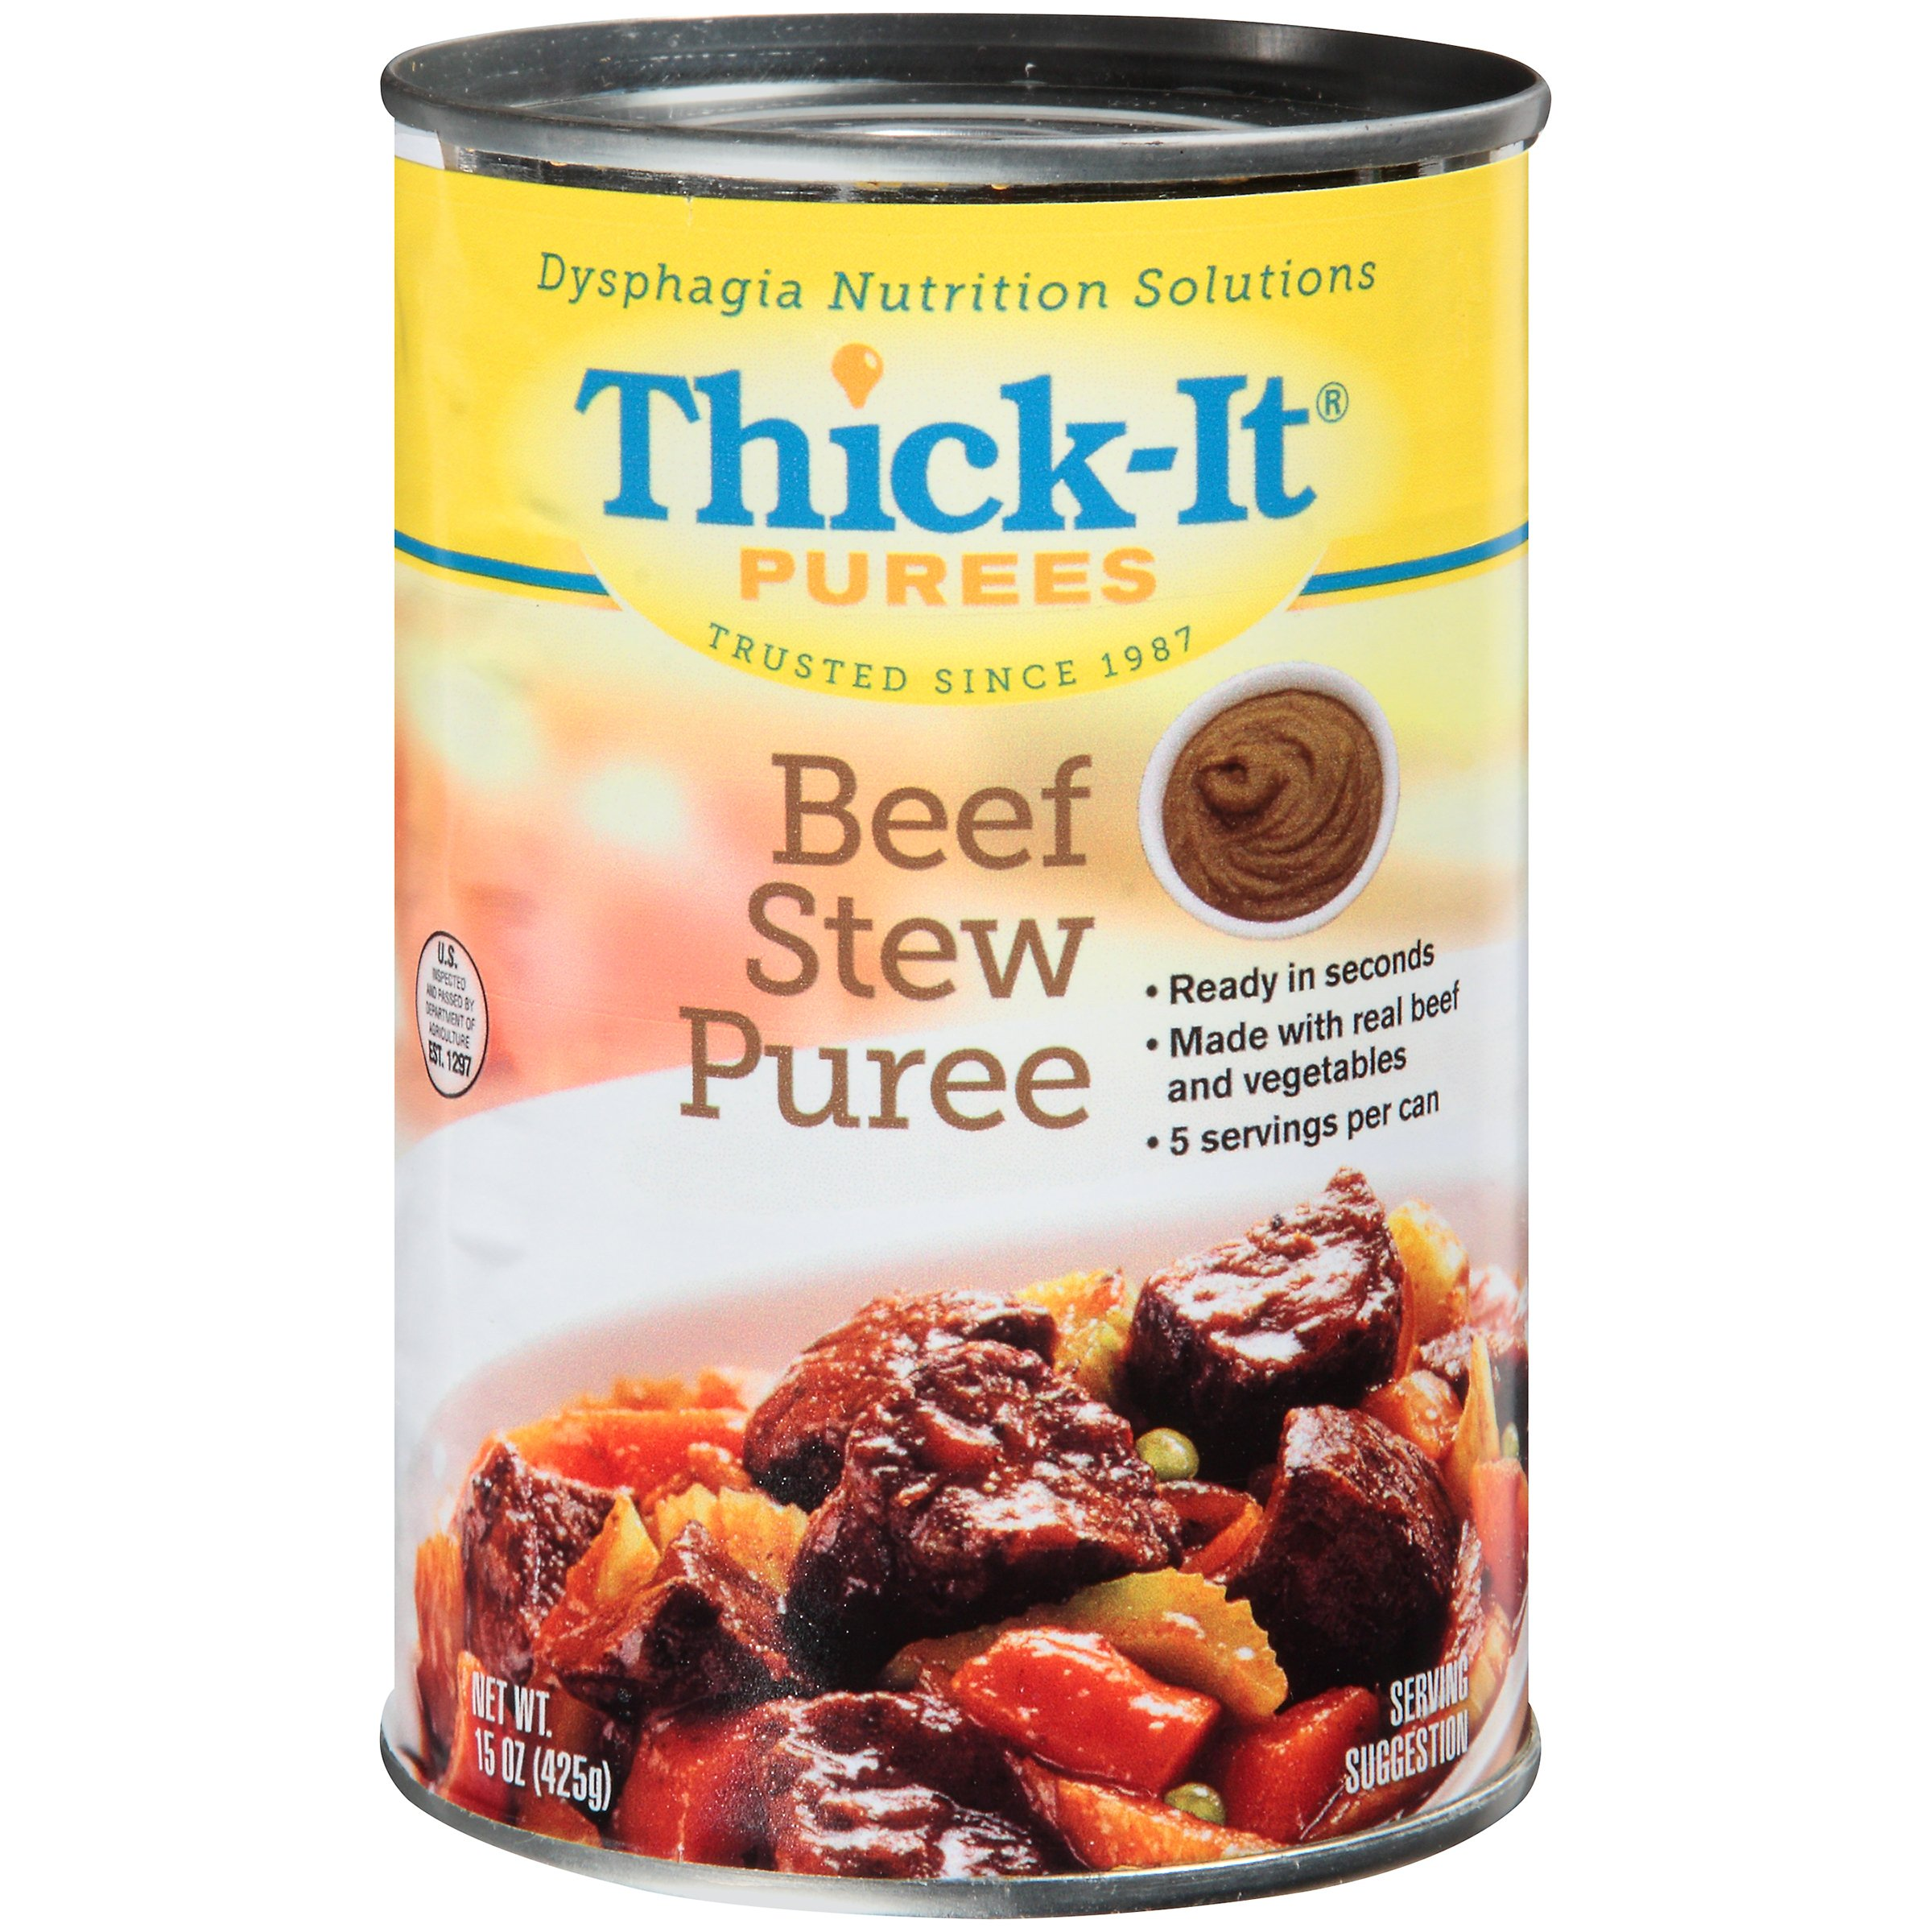 Thick-It Puree Ready to Use, Beef Stew Flavor, 15 oz., Can, H308-F8800, Case of 12 Cans